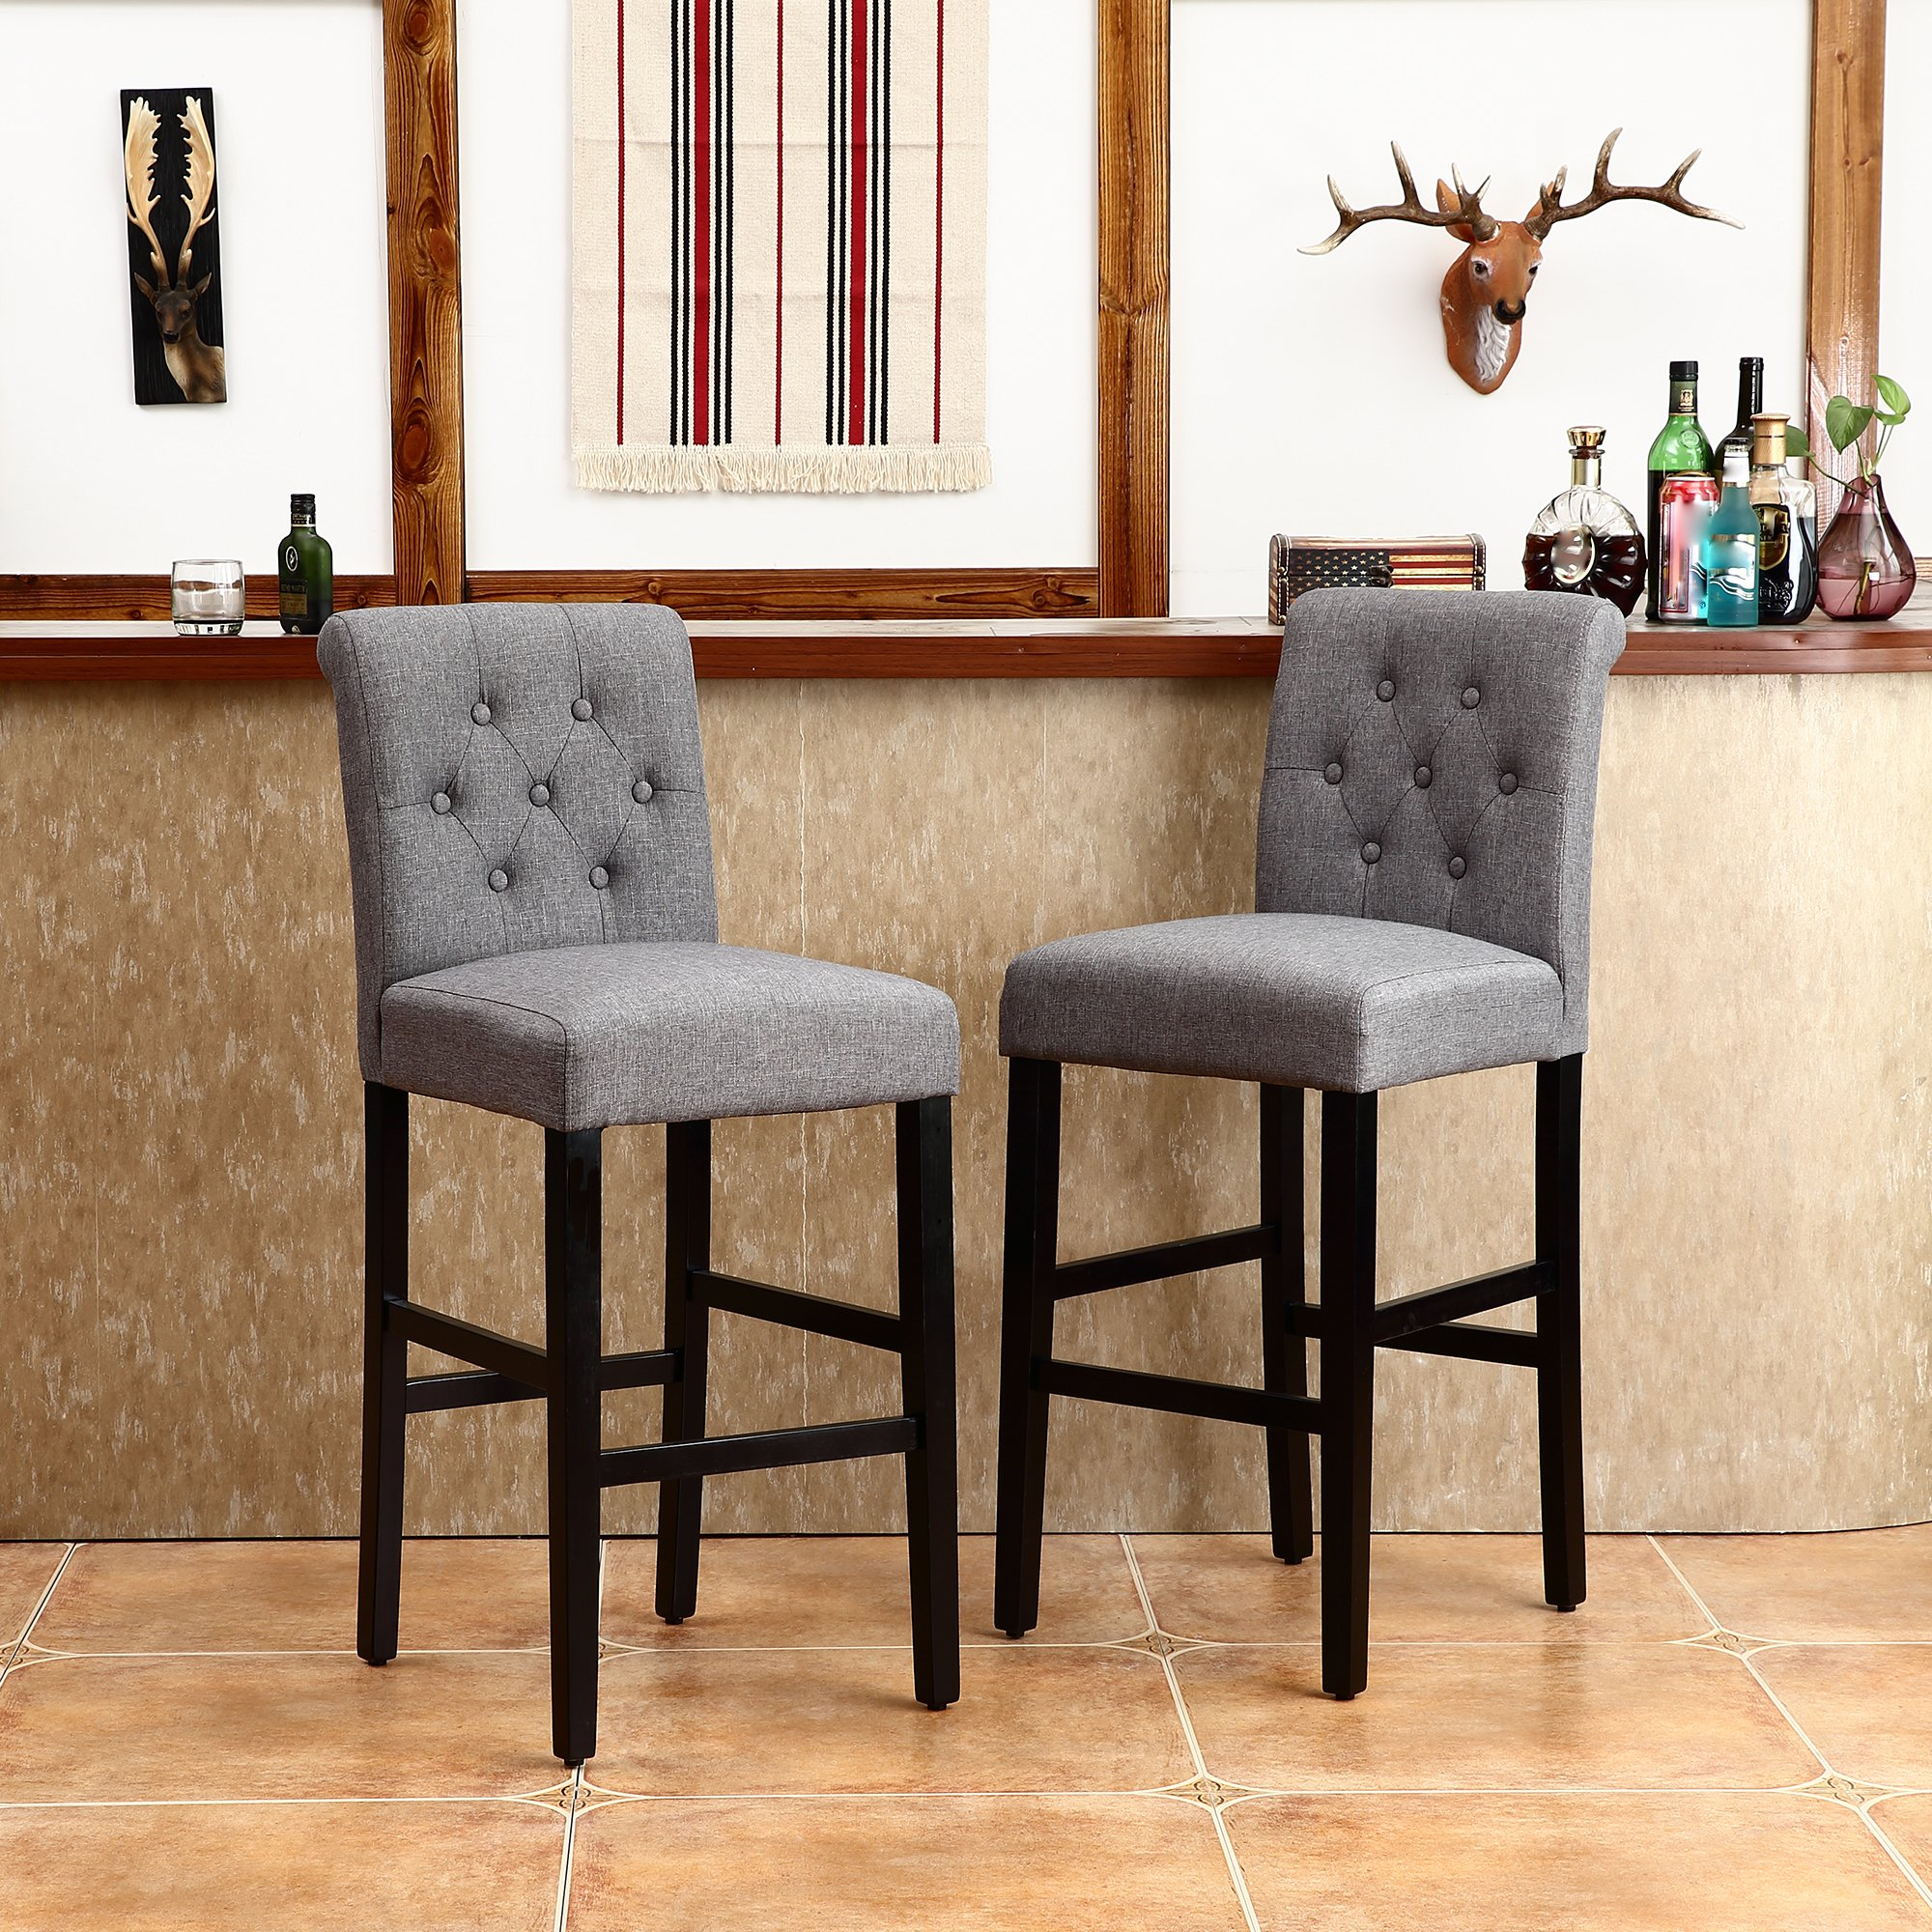 LSSBOUGHT Set of 2 Button-Tufted Fabric Barstools Dining High Counter Height Side Chairs (Seat Height: 30'', Gray)